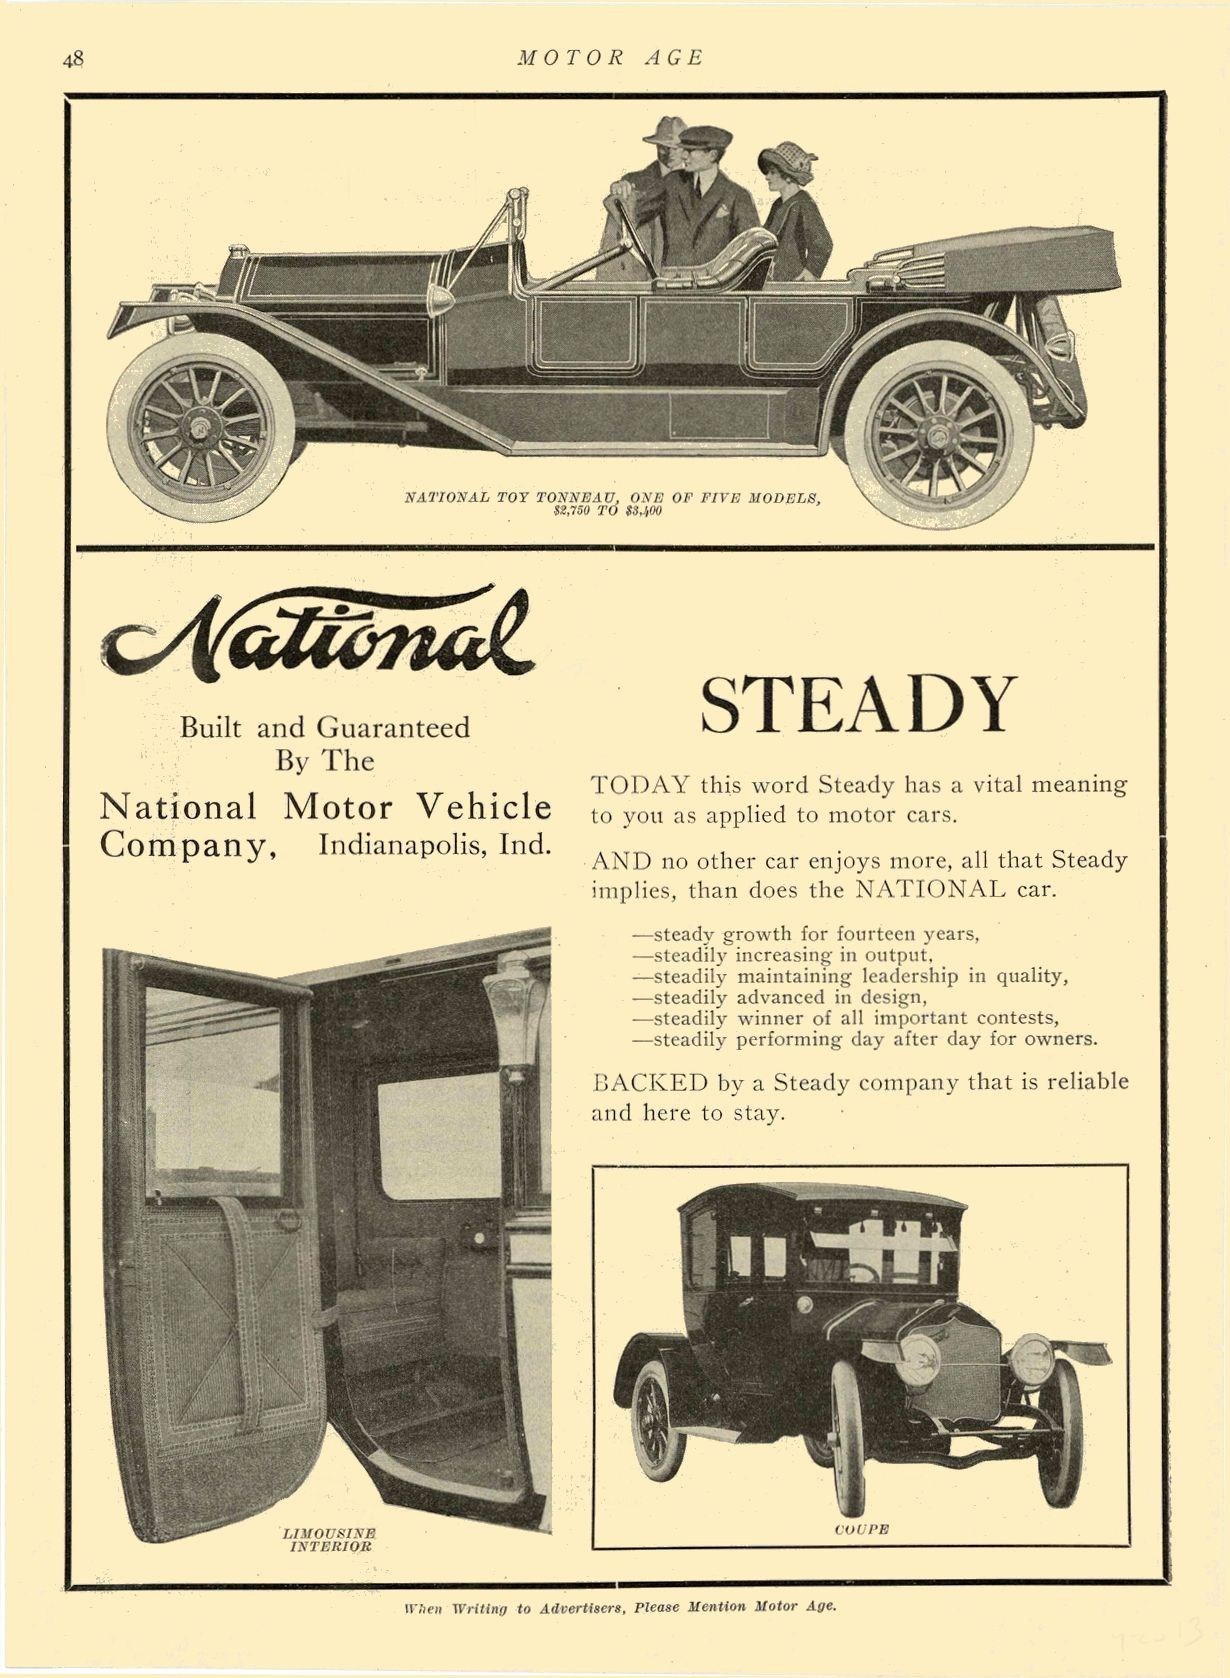 1913 9 25 NATIONAL National STEADY National Motor Vehicle Company Indianapolis, IND MOTOR AGE September 25, 1913 8.25″x11″ page 48